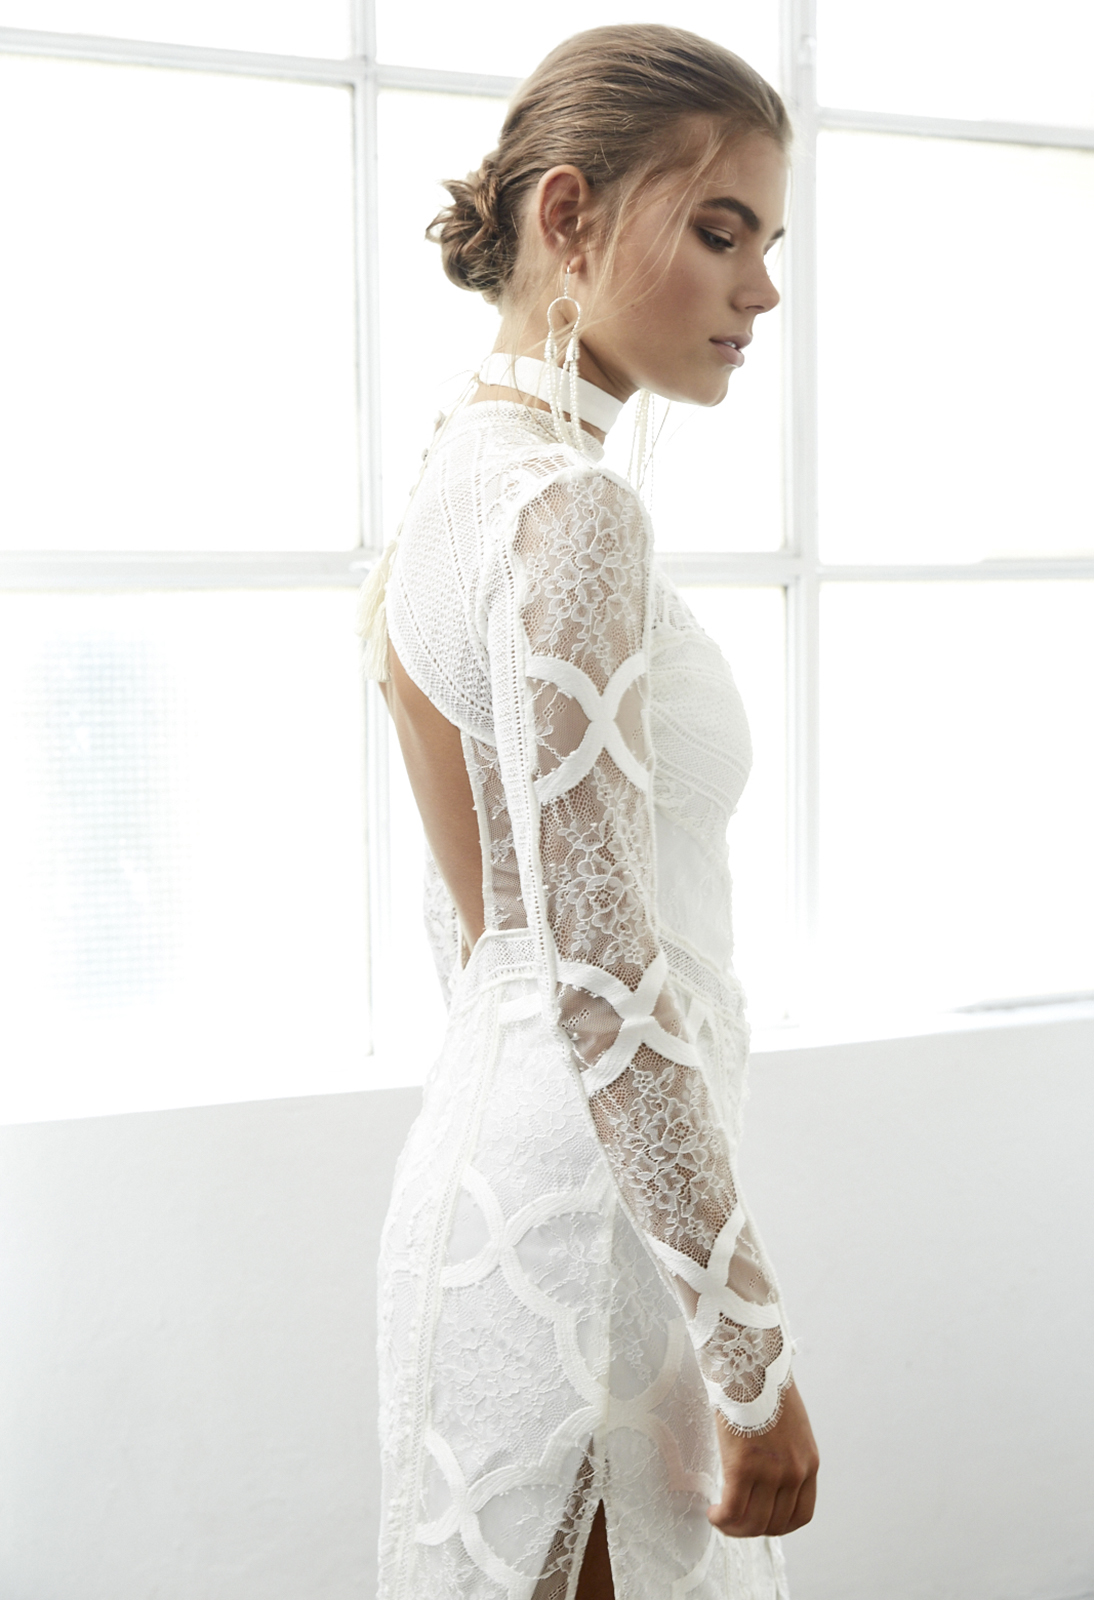 Lace Wedding Dress Designers Australia - Wedding Dress Designers